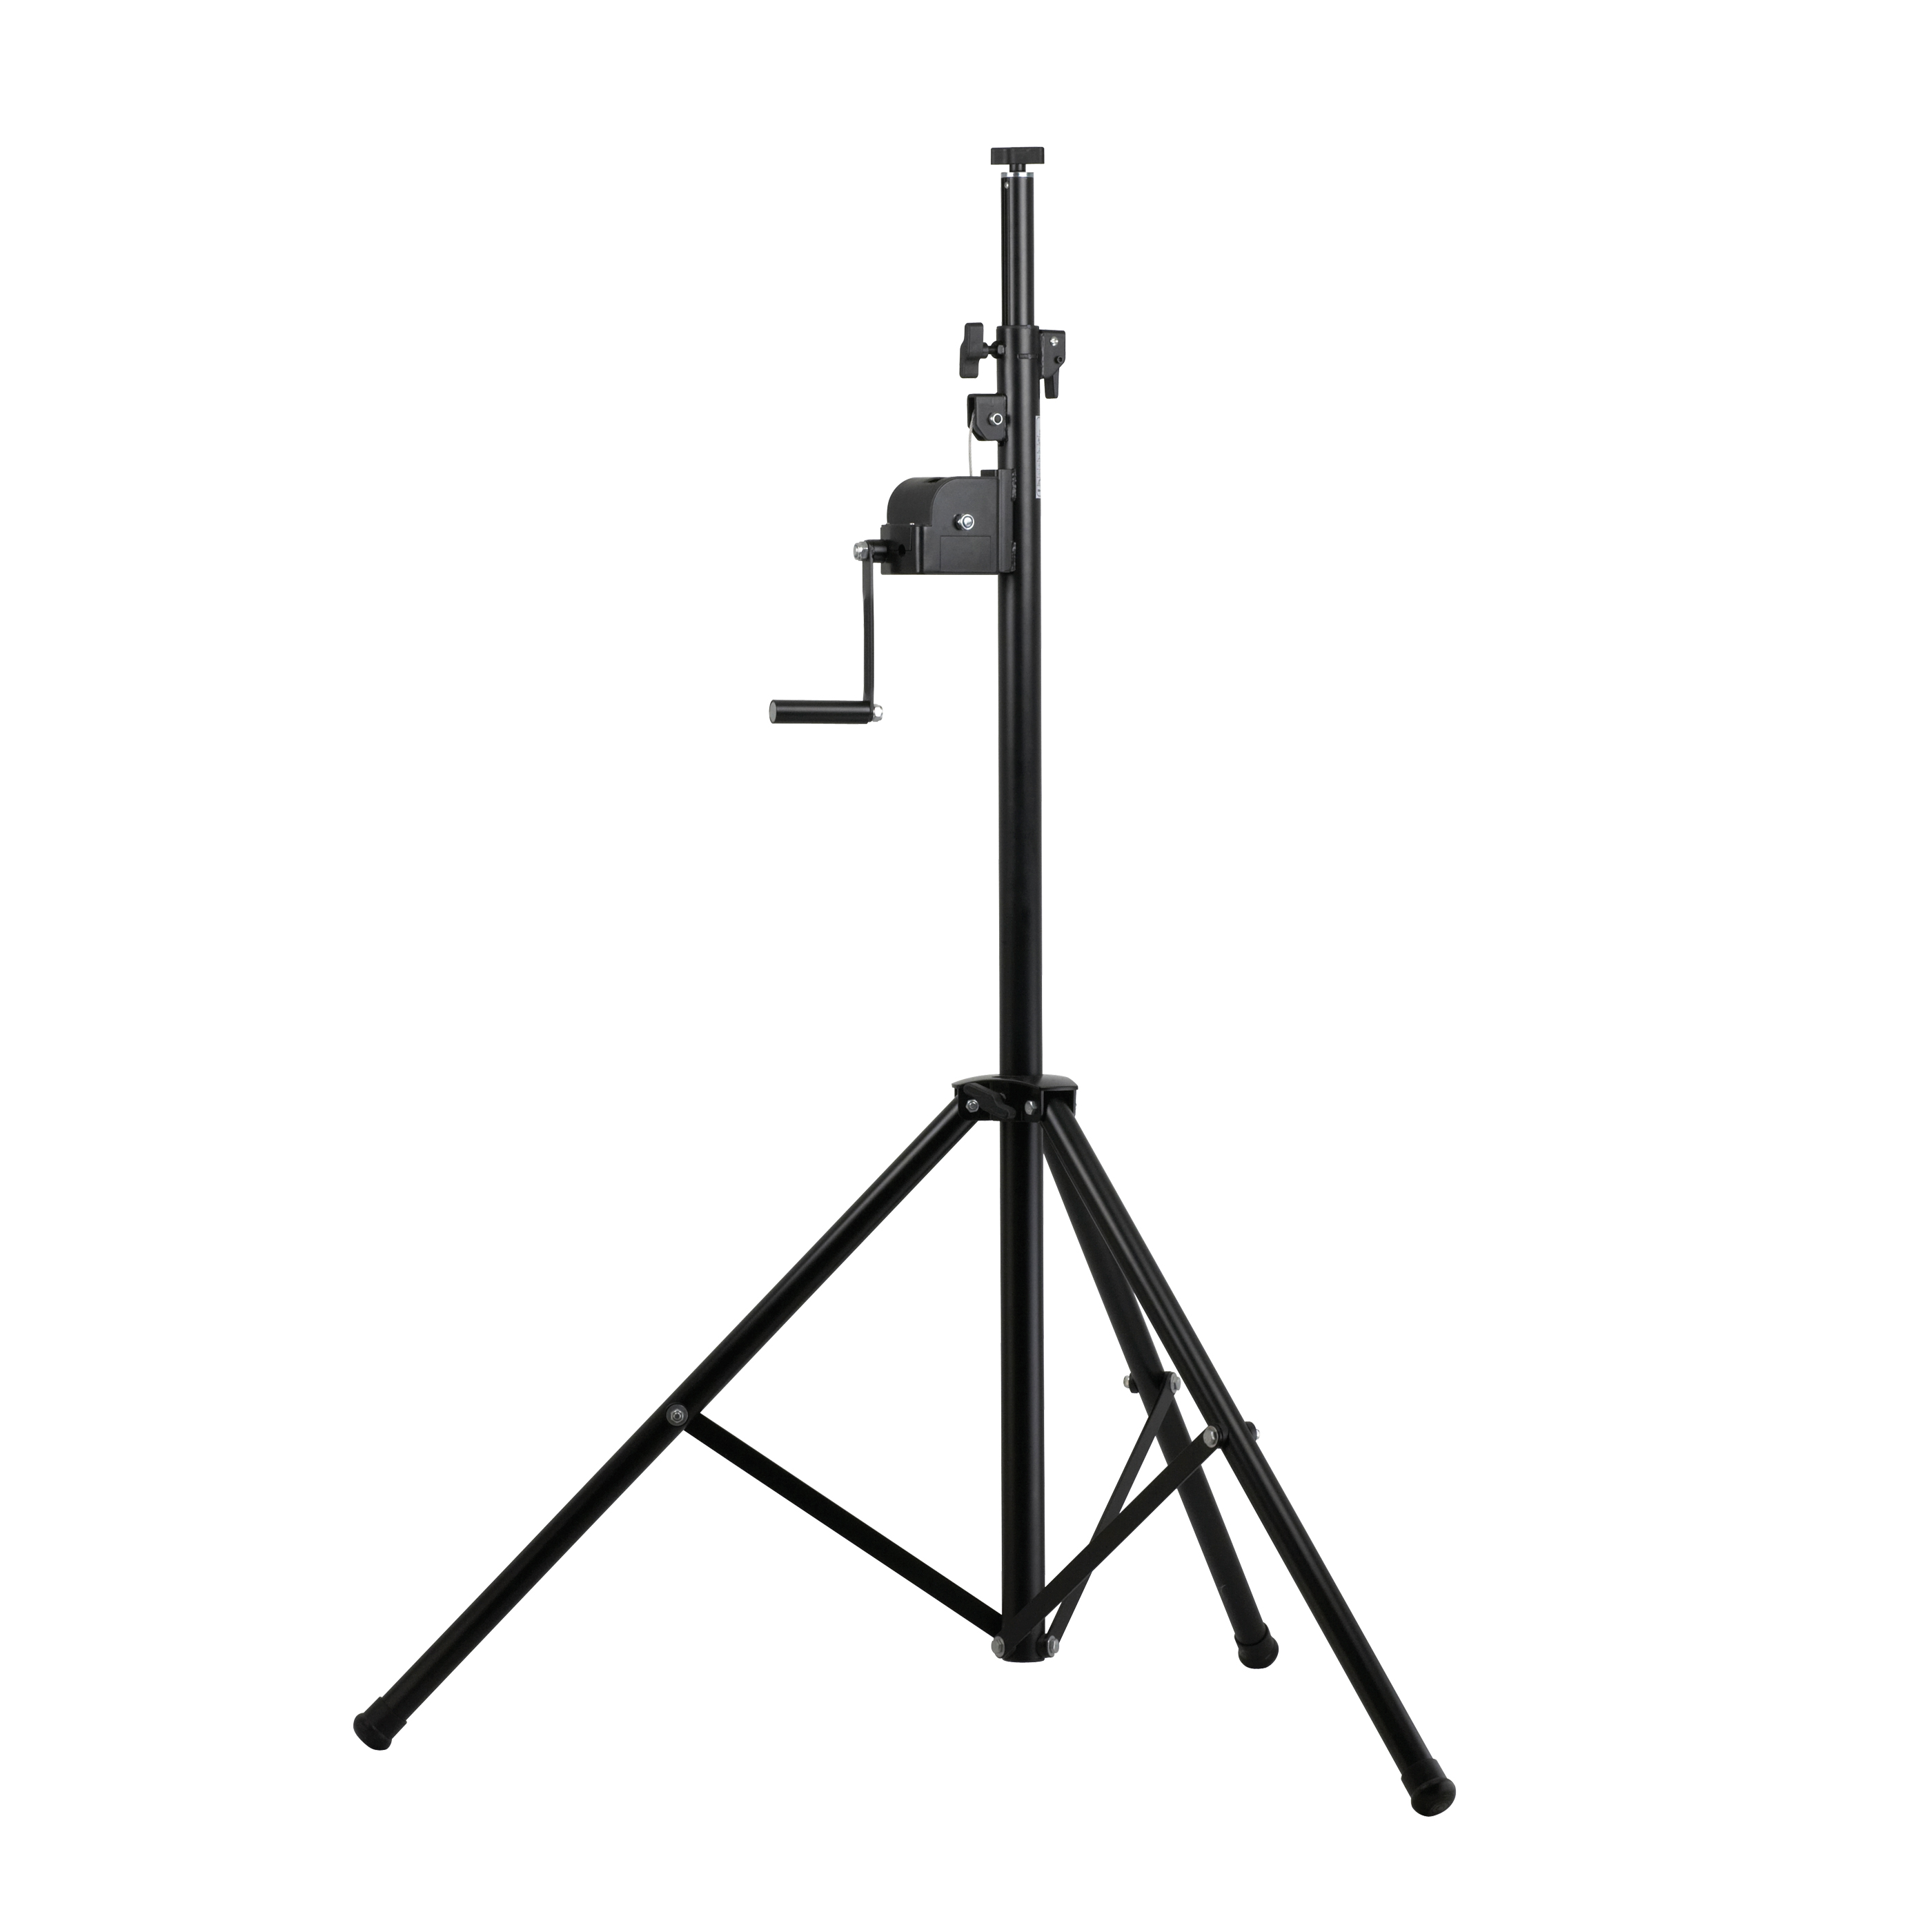 3m 60kg Winch Stand - With an all metal construction this robust 3m winch stand will provide years of on the road use.